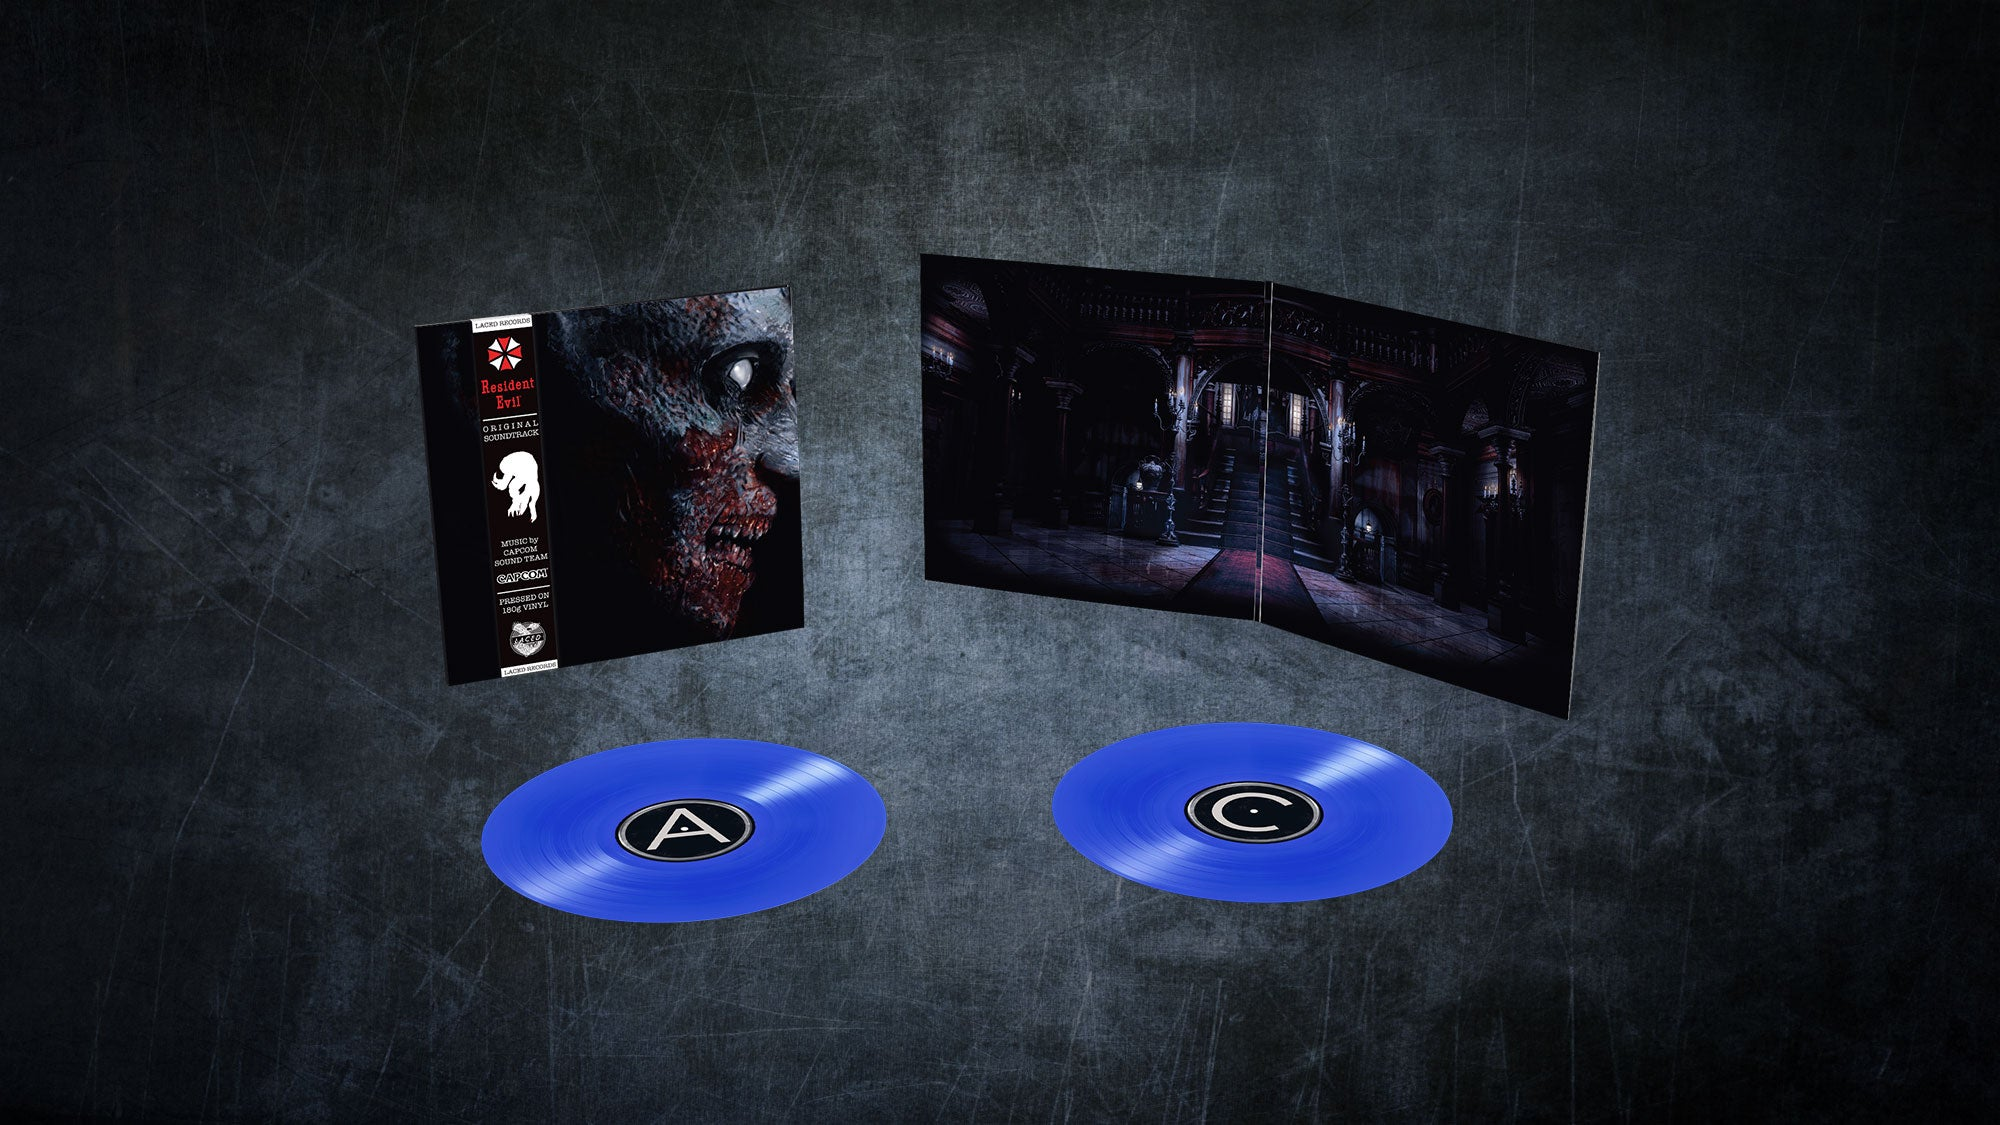 The Resident Evil 2002 vinyl laid out with blue LPs